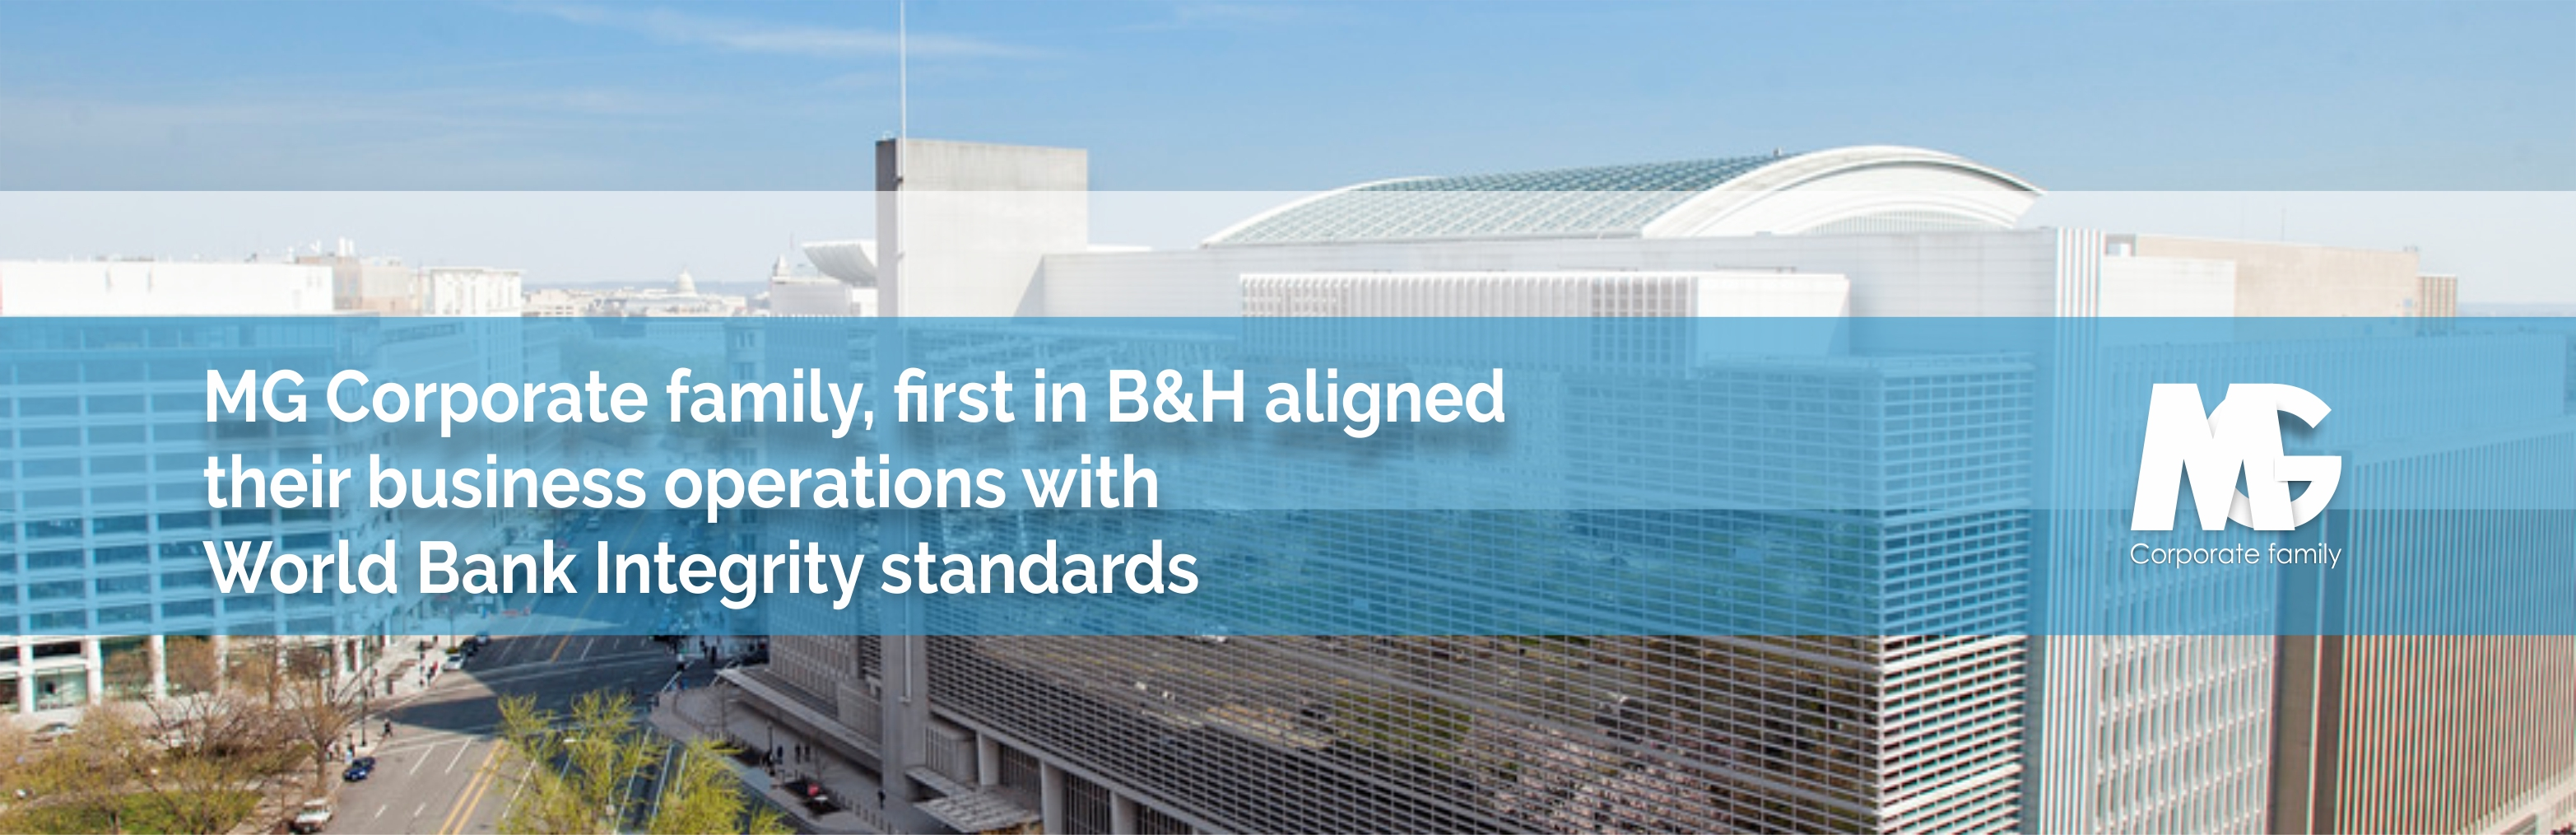 MG Corporate family, first in B&H aligned their business operations with World Bank Integrity standards